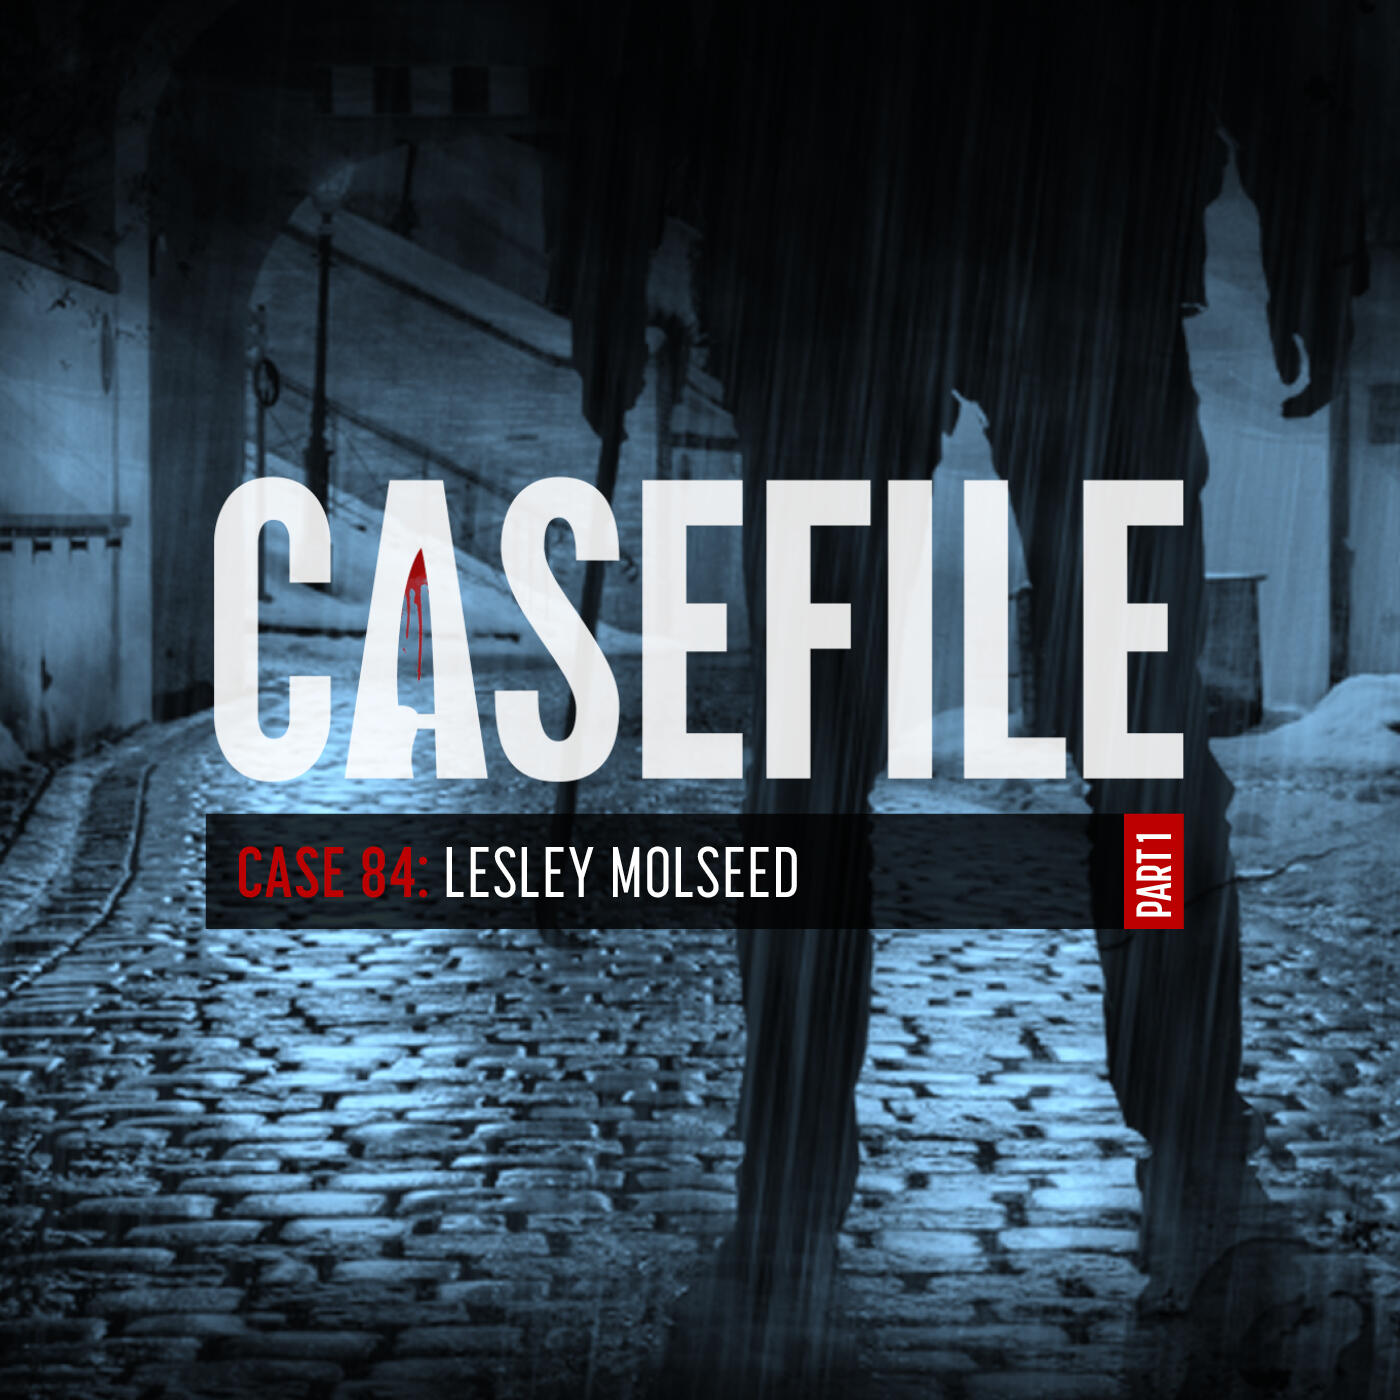 Case 84: Lesley Molseed (Part 1)